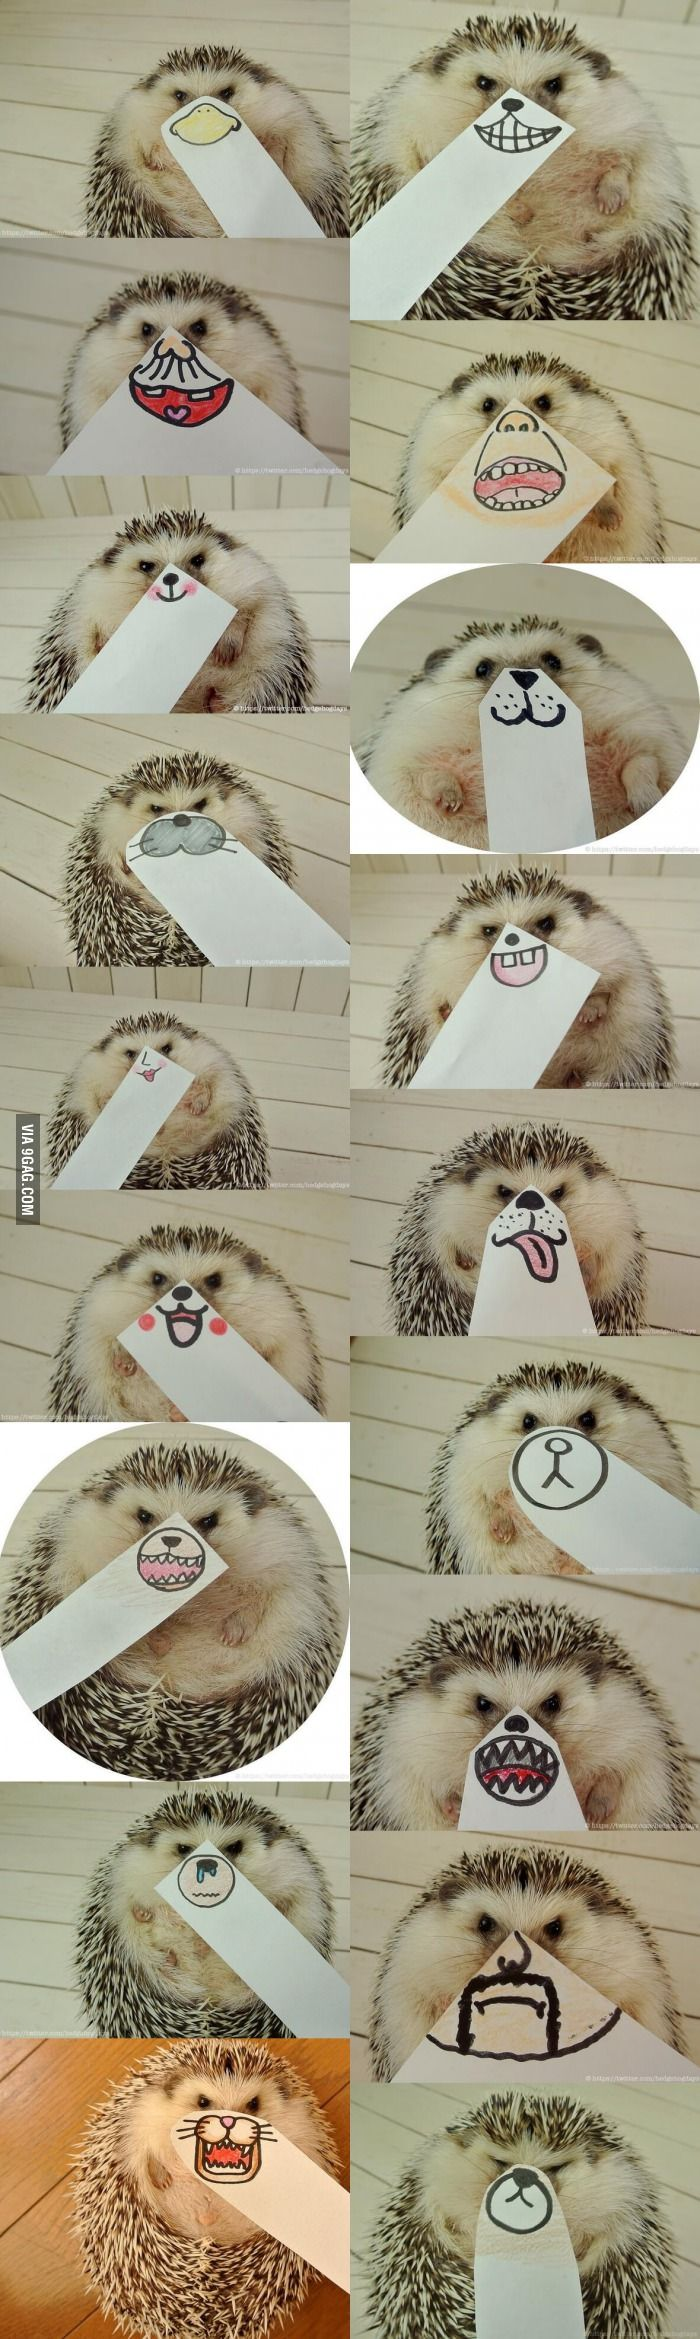 The Faces Of This Hedgehog Are The Best Things